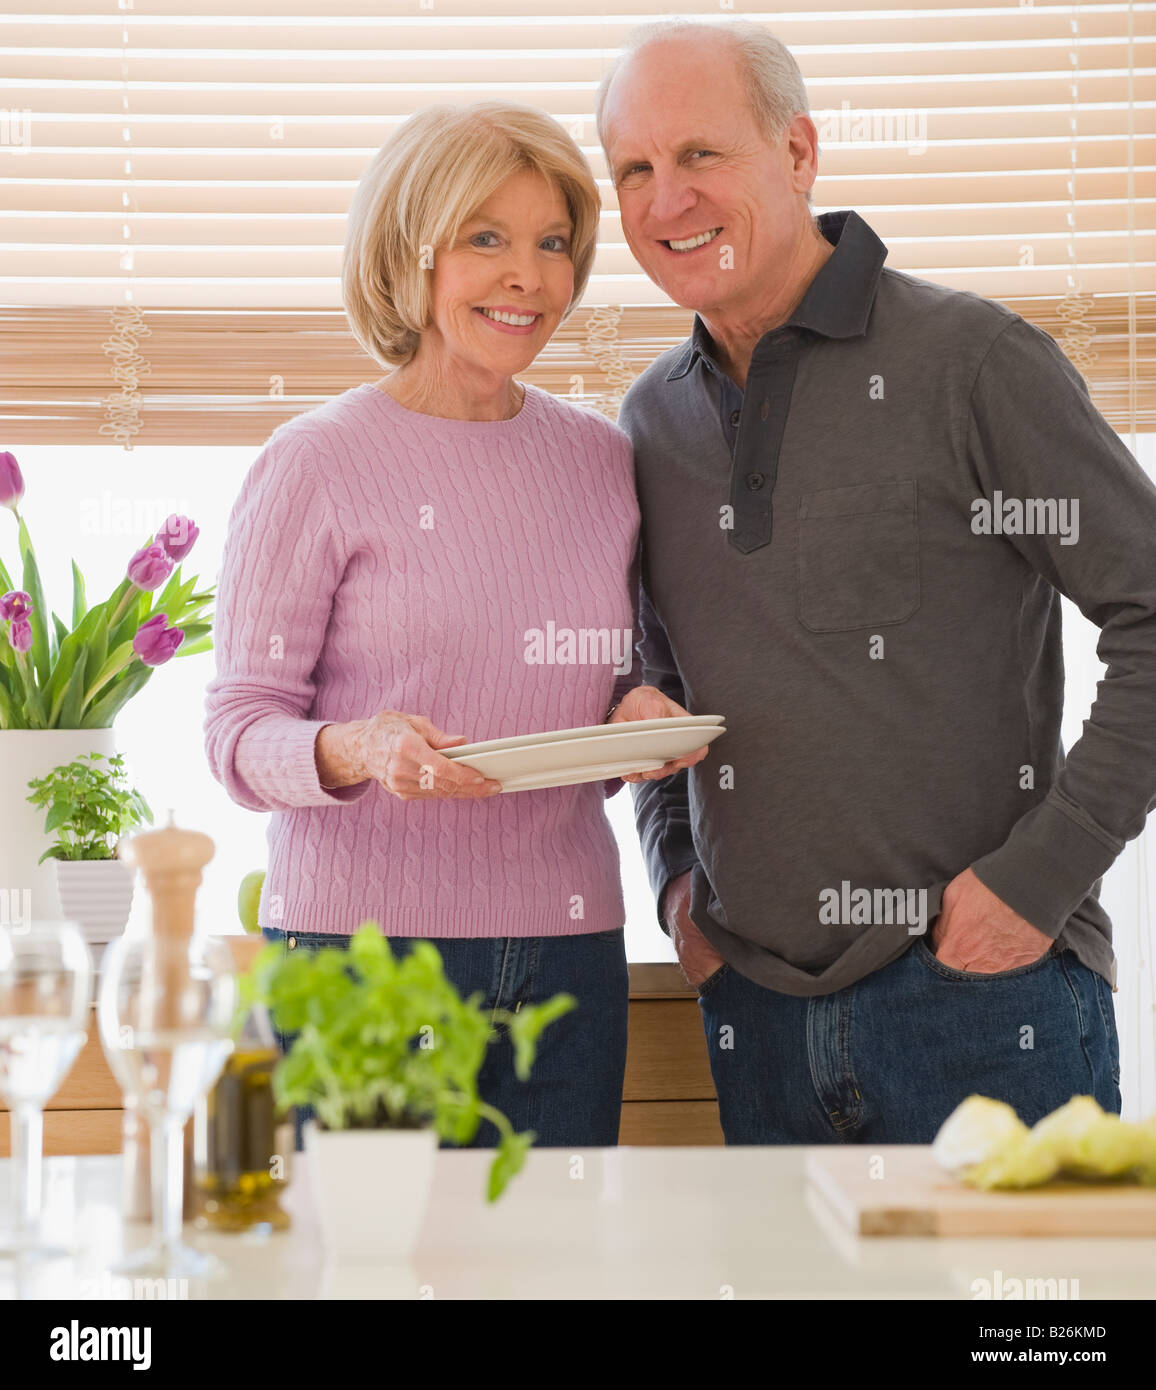 Senior couple with dishes in kitchen - Stock Image